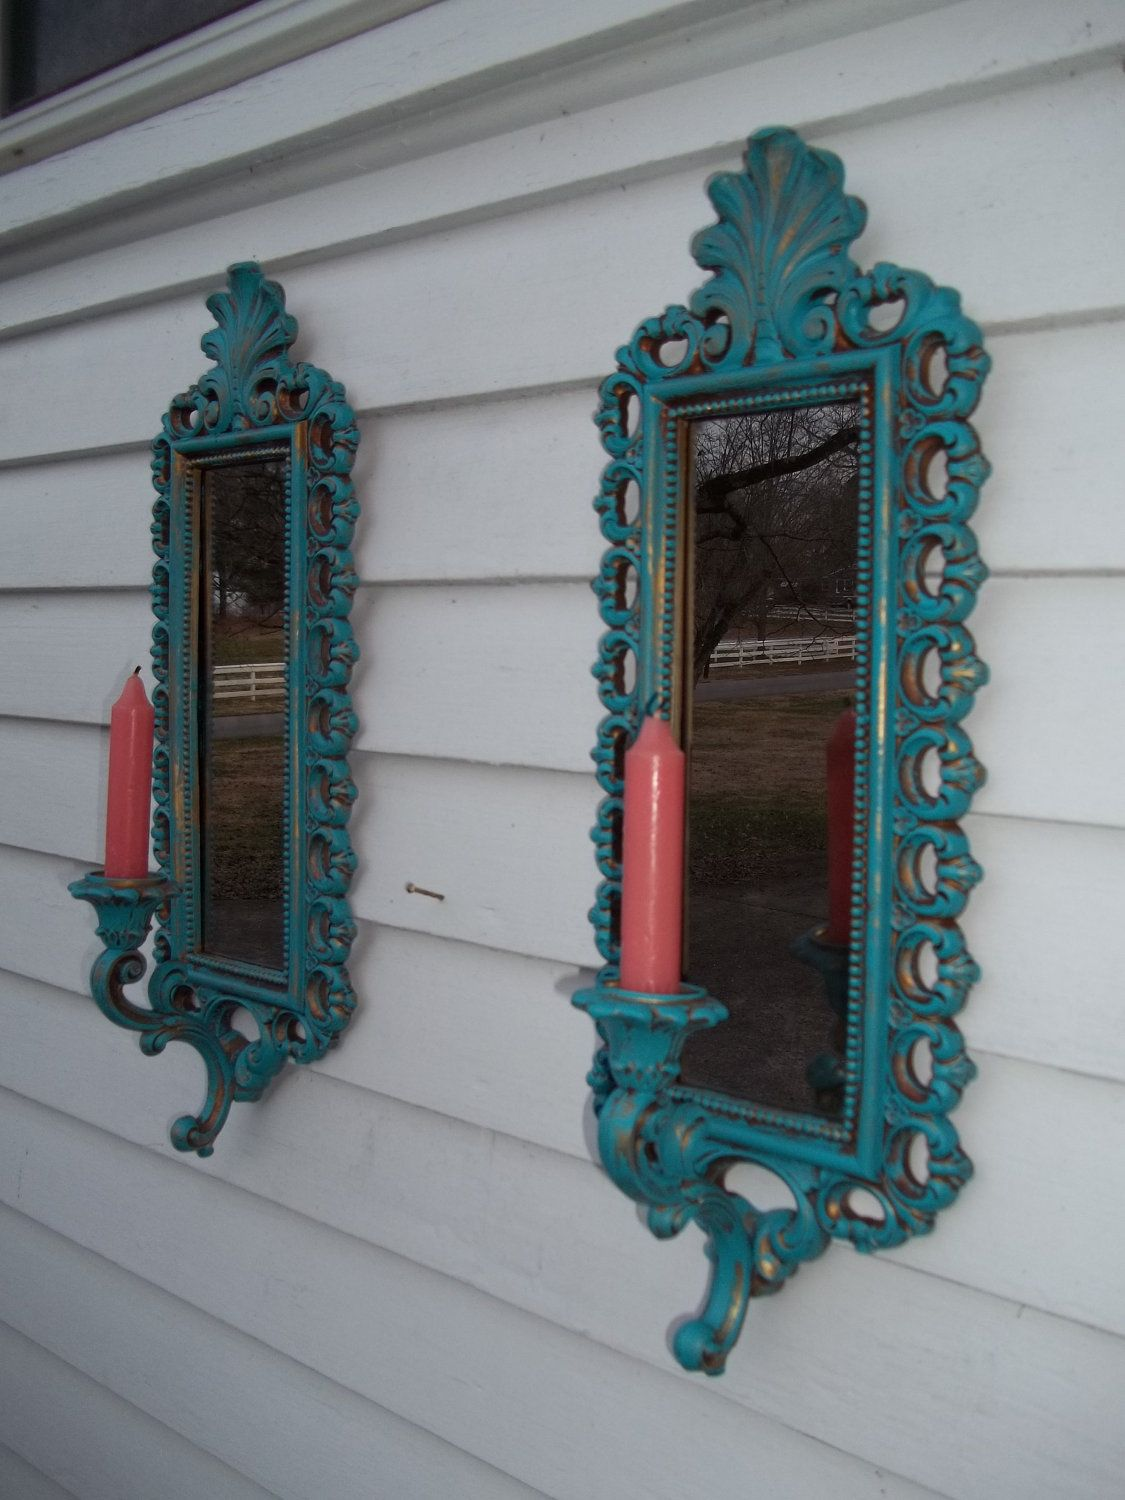 Smokey Blue Bedroom: Vintage Set Of Peacock Blue Ornate Candle Sconces With A